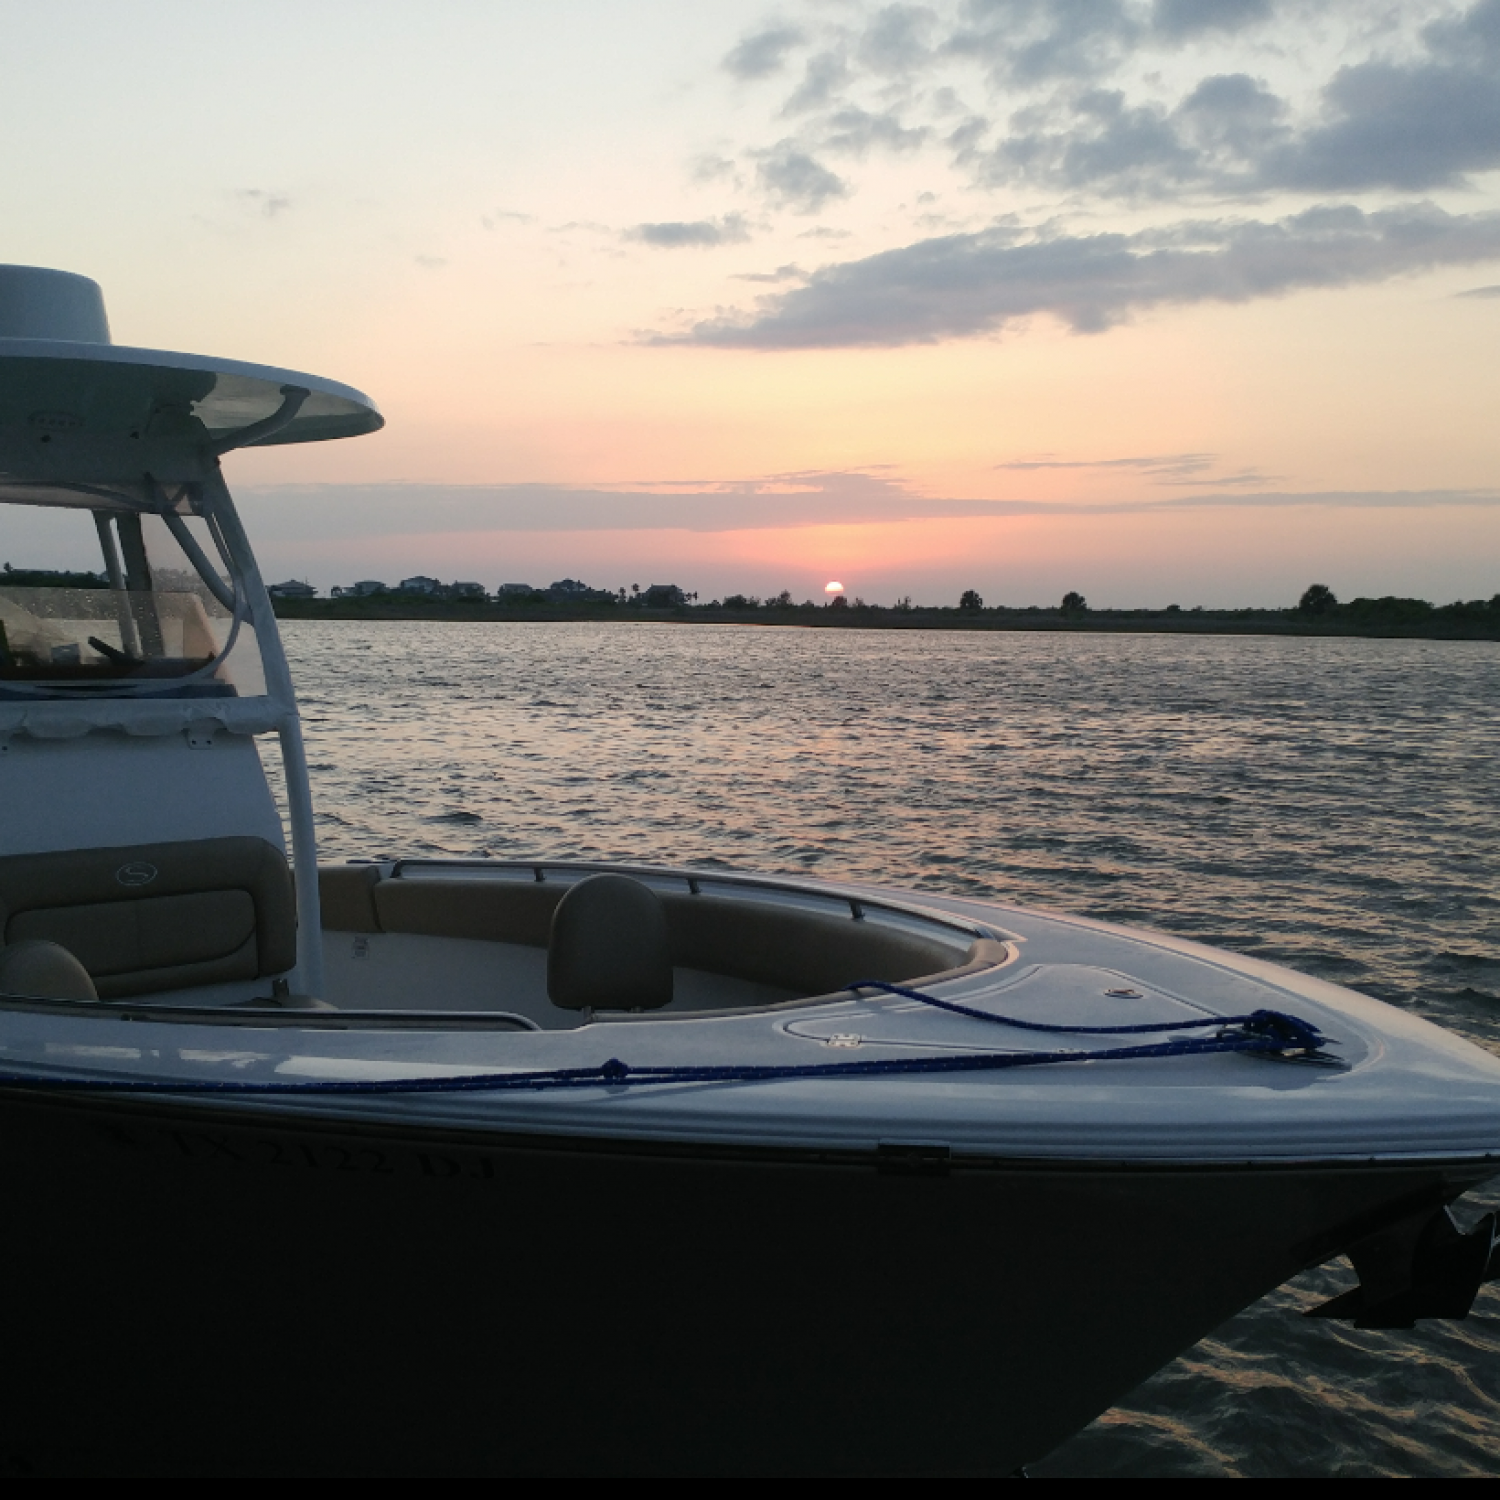 Title: Sportsman Sunset - On board their Sportsman Heritage 251 Center Console - Location: Galveston, TX. Participating in the Photo Contest #SportsmanFebruary2018